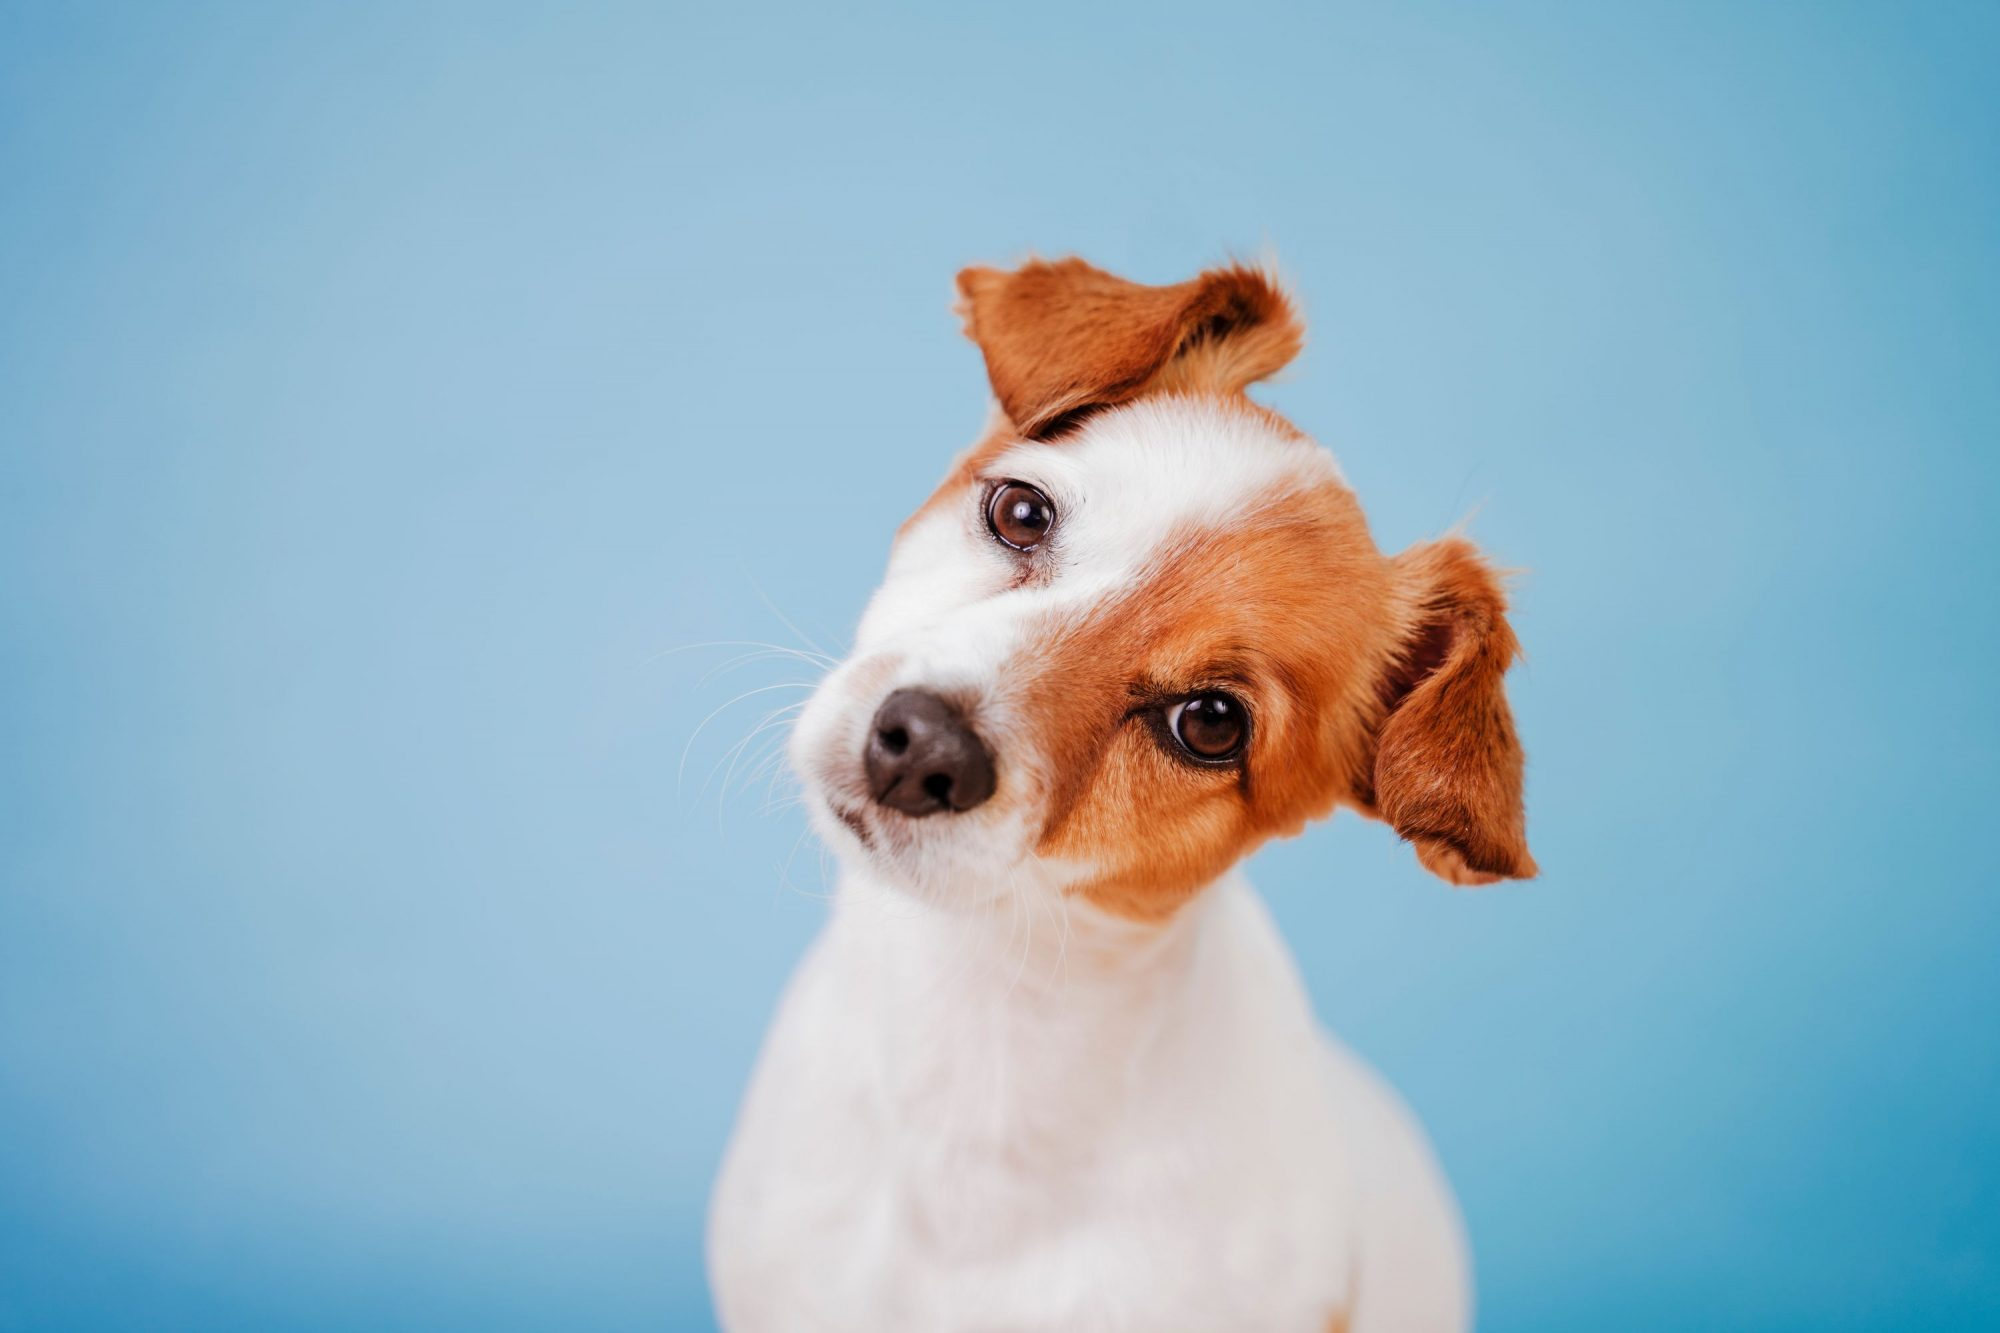 Dog tilting head to the side wondering if pet vaccines help her.